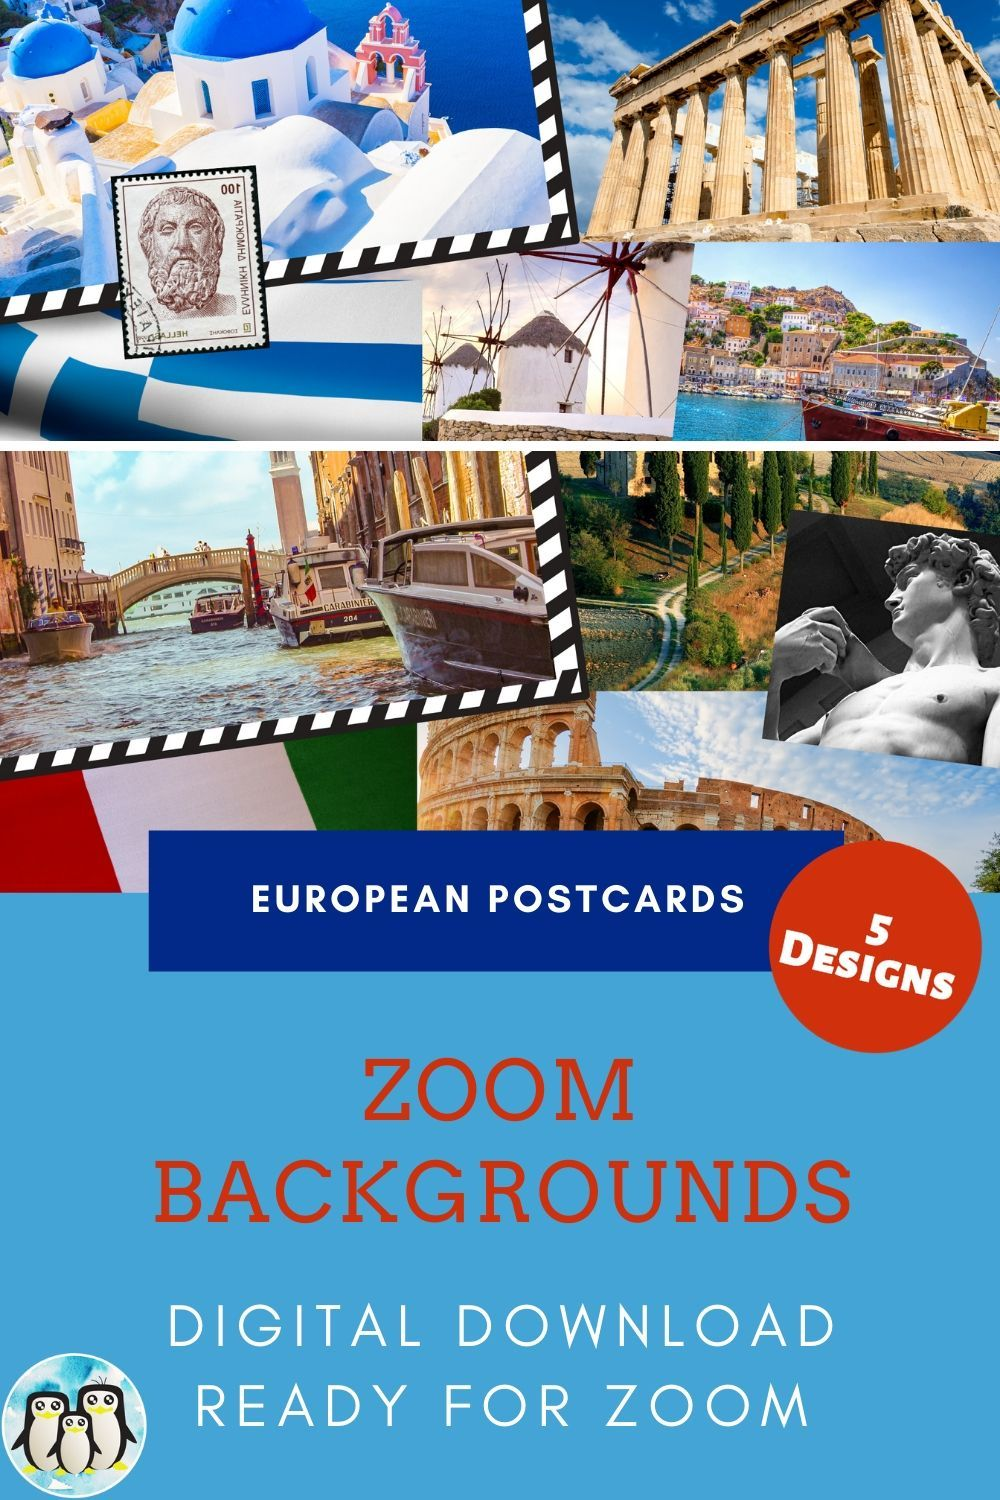 Zoom Virtual Background Bundle Of 5 European Postcards Zoom Etsy Cute Gifts For Friends Postcard Background